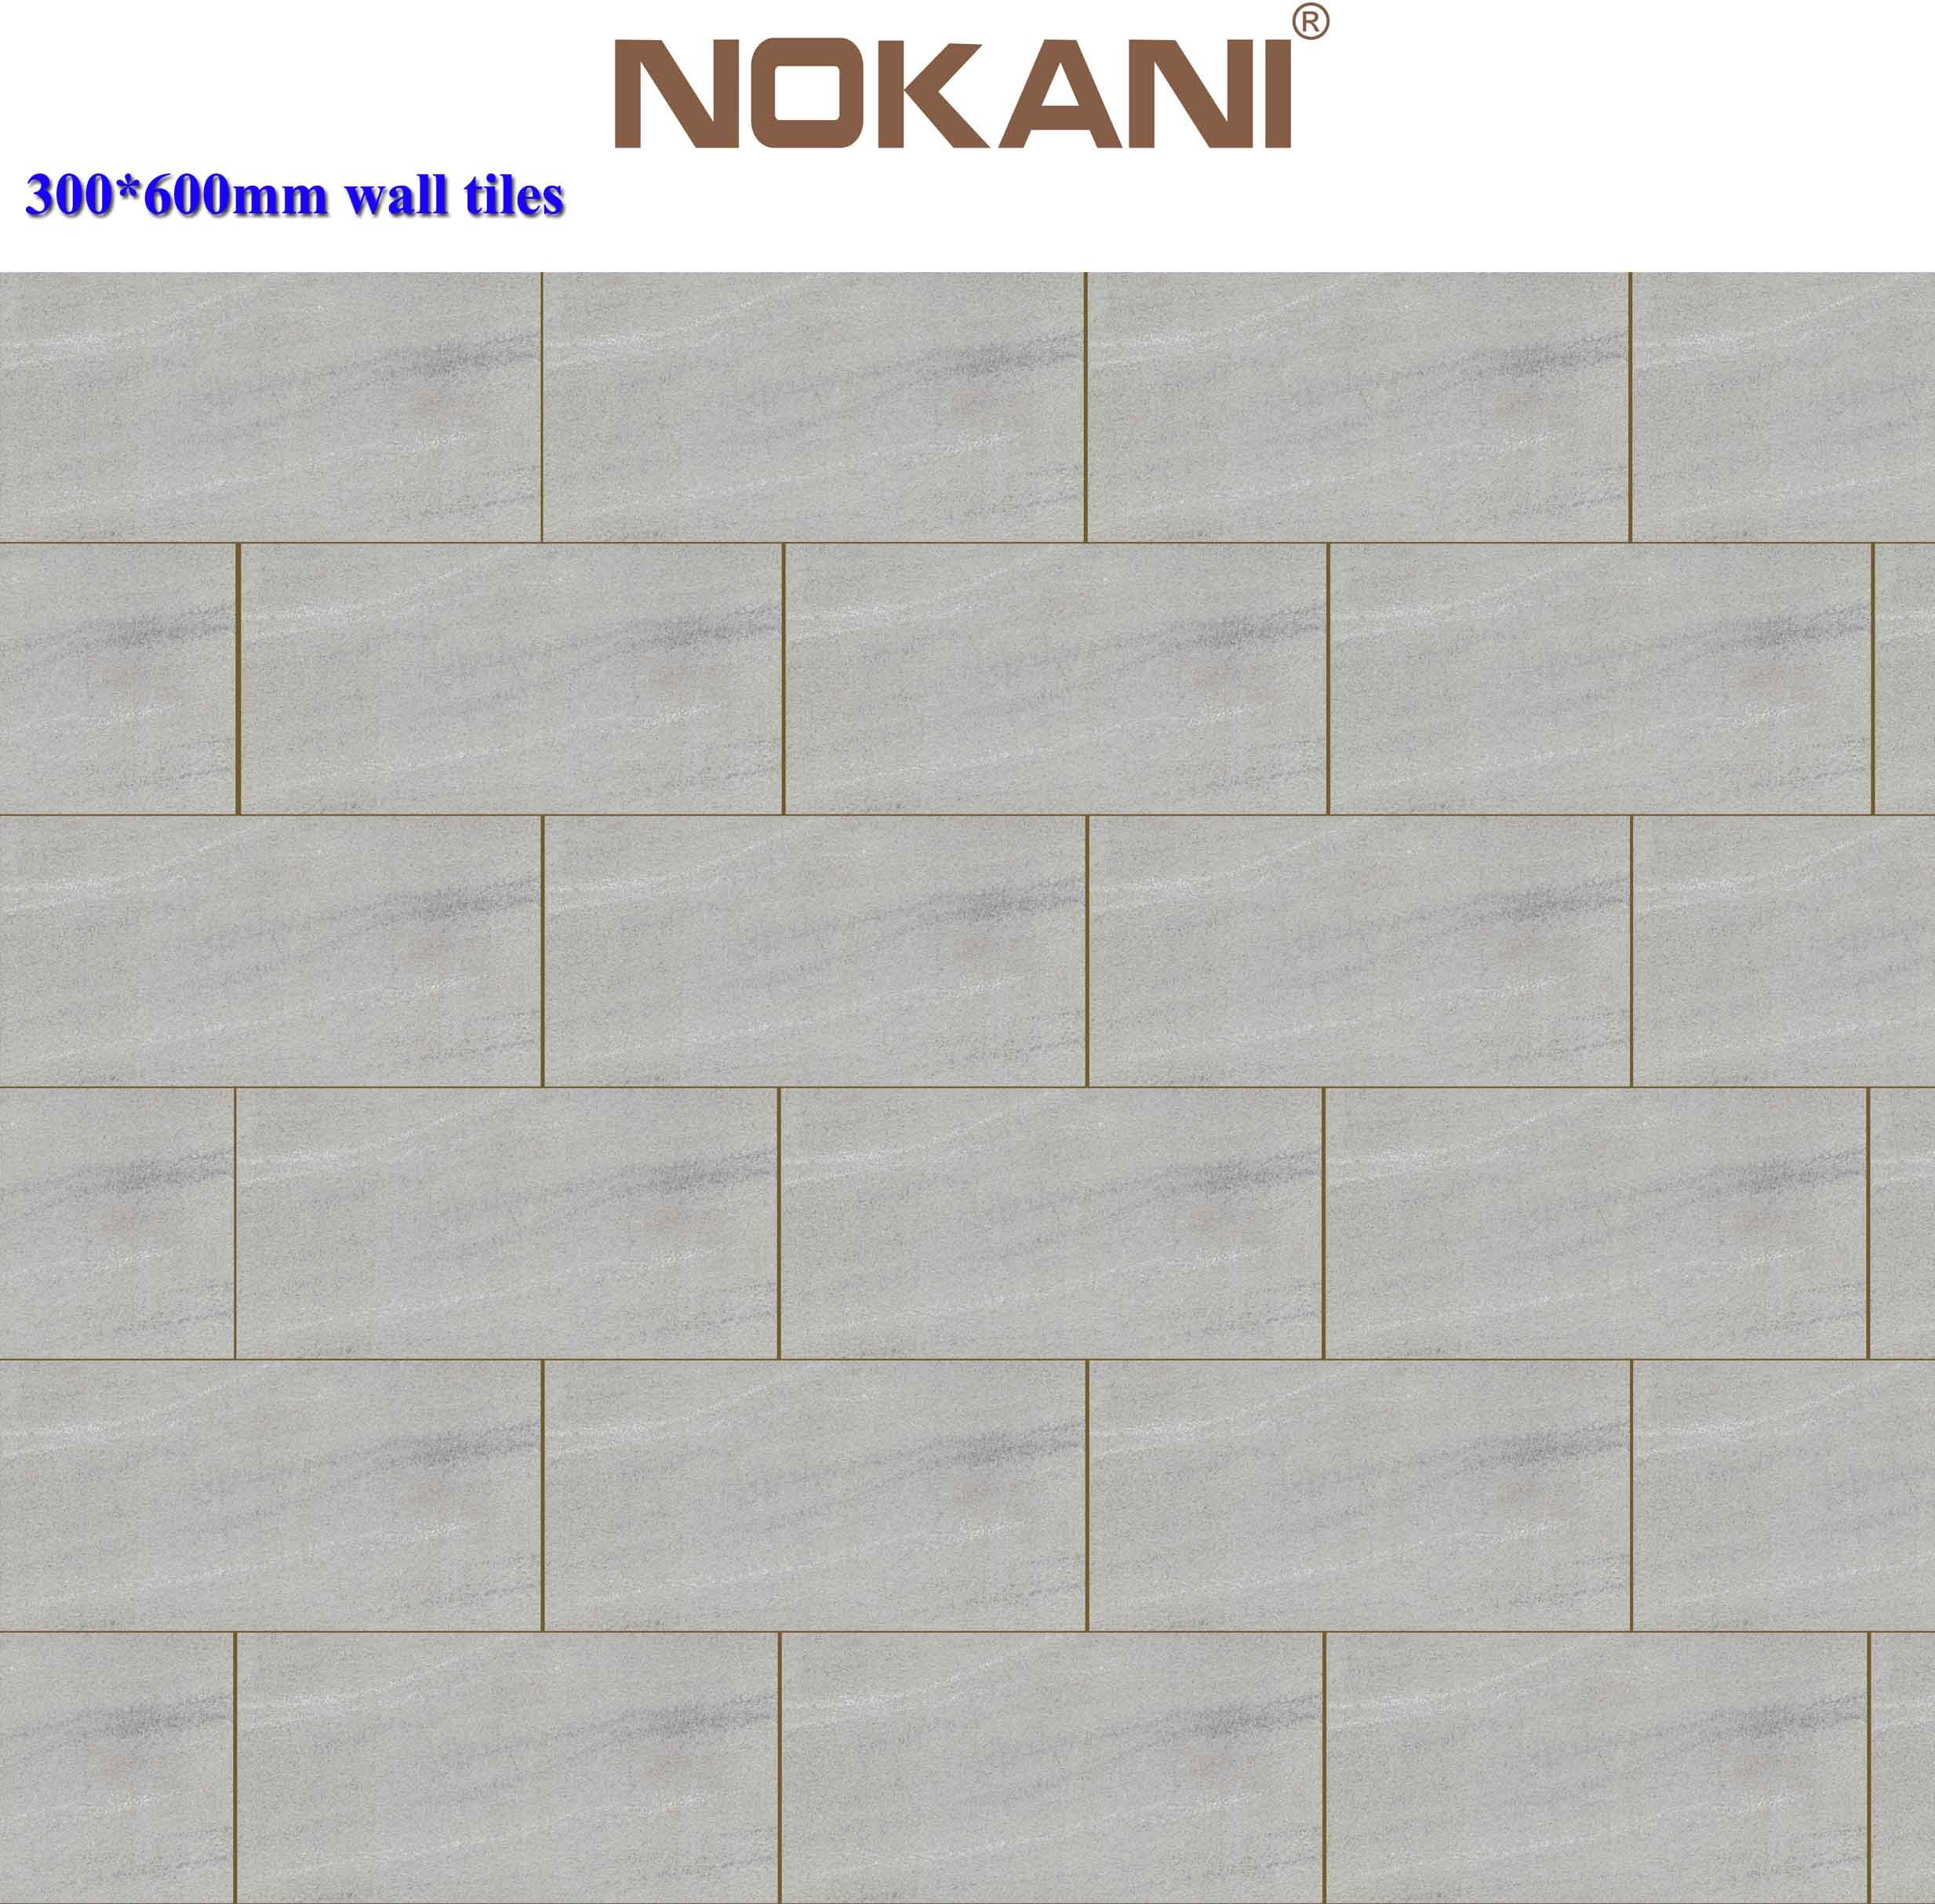 Exterior ceramic wall tile image collections tile flooring ceramic exterior wall tiles gallery tile flooring design ideas exterior ceramic wall tile choice image tile doublecrazyfo Image collections